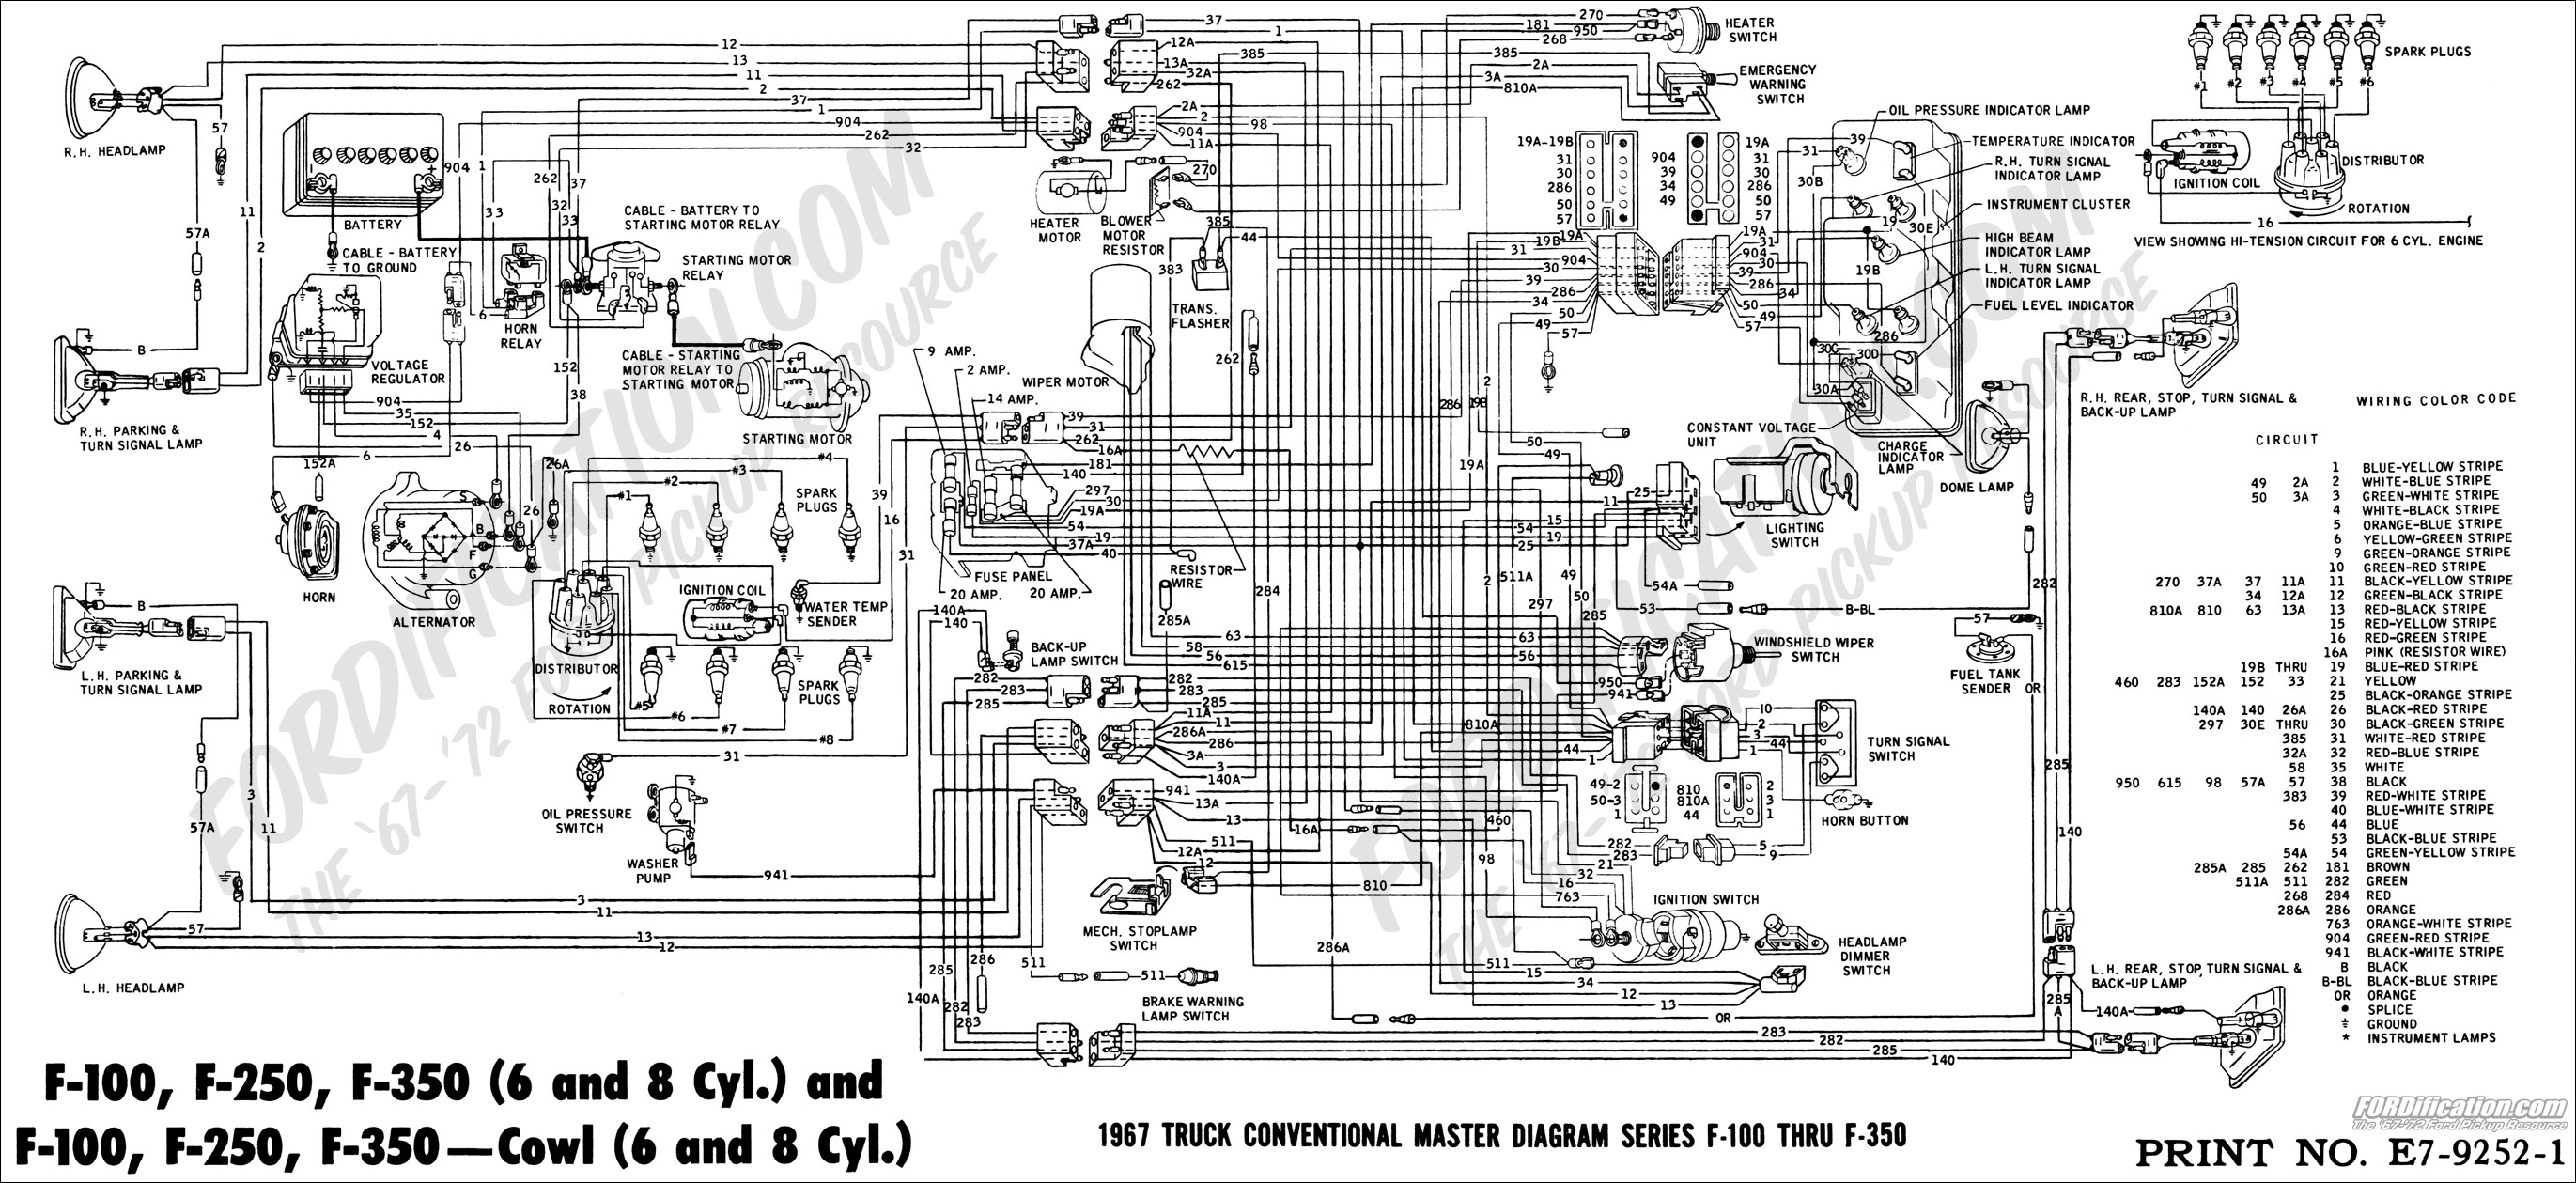 67masterdiagram 1999 ford radio wiring diagram turcolea com 1999 ford f350 radio wiring diagram at eliteediting.co